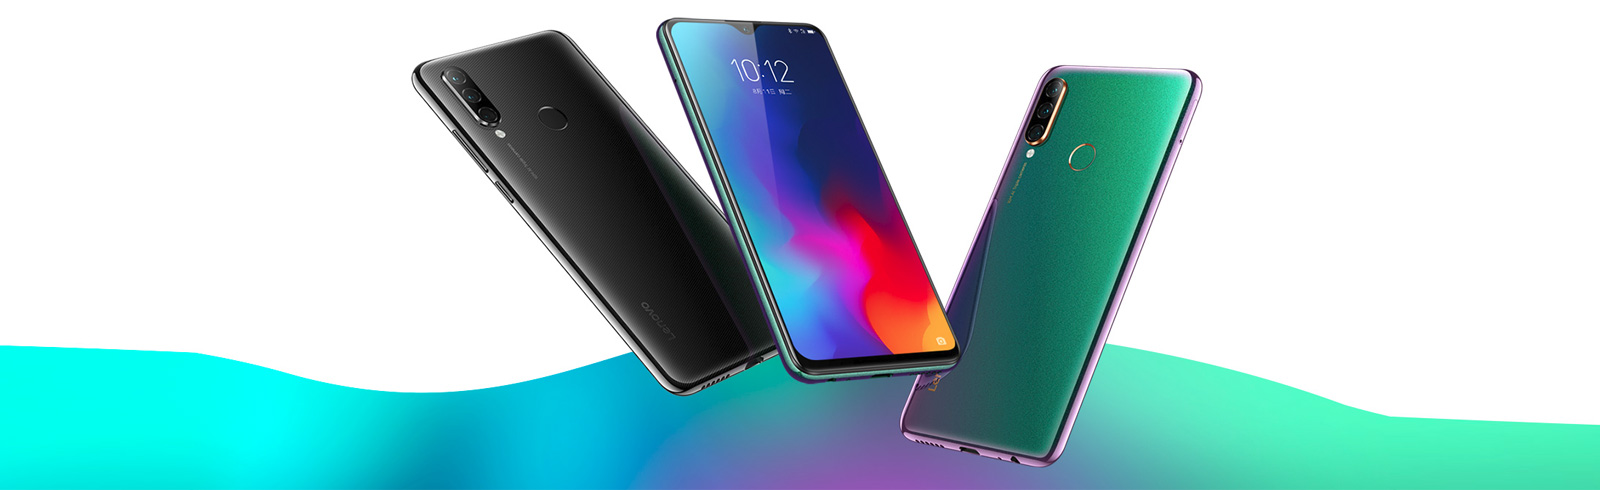 Lenovo Z6 Lite with 4GB RAM and 64GB ROM is launched, costs USD 159